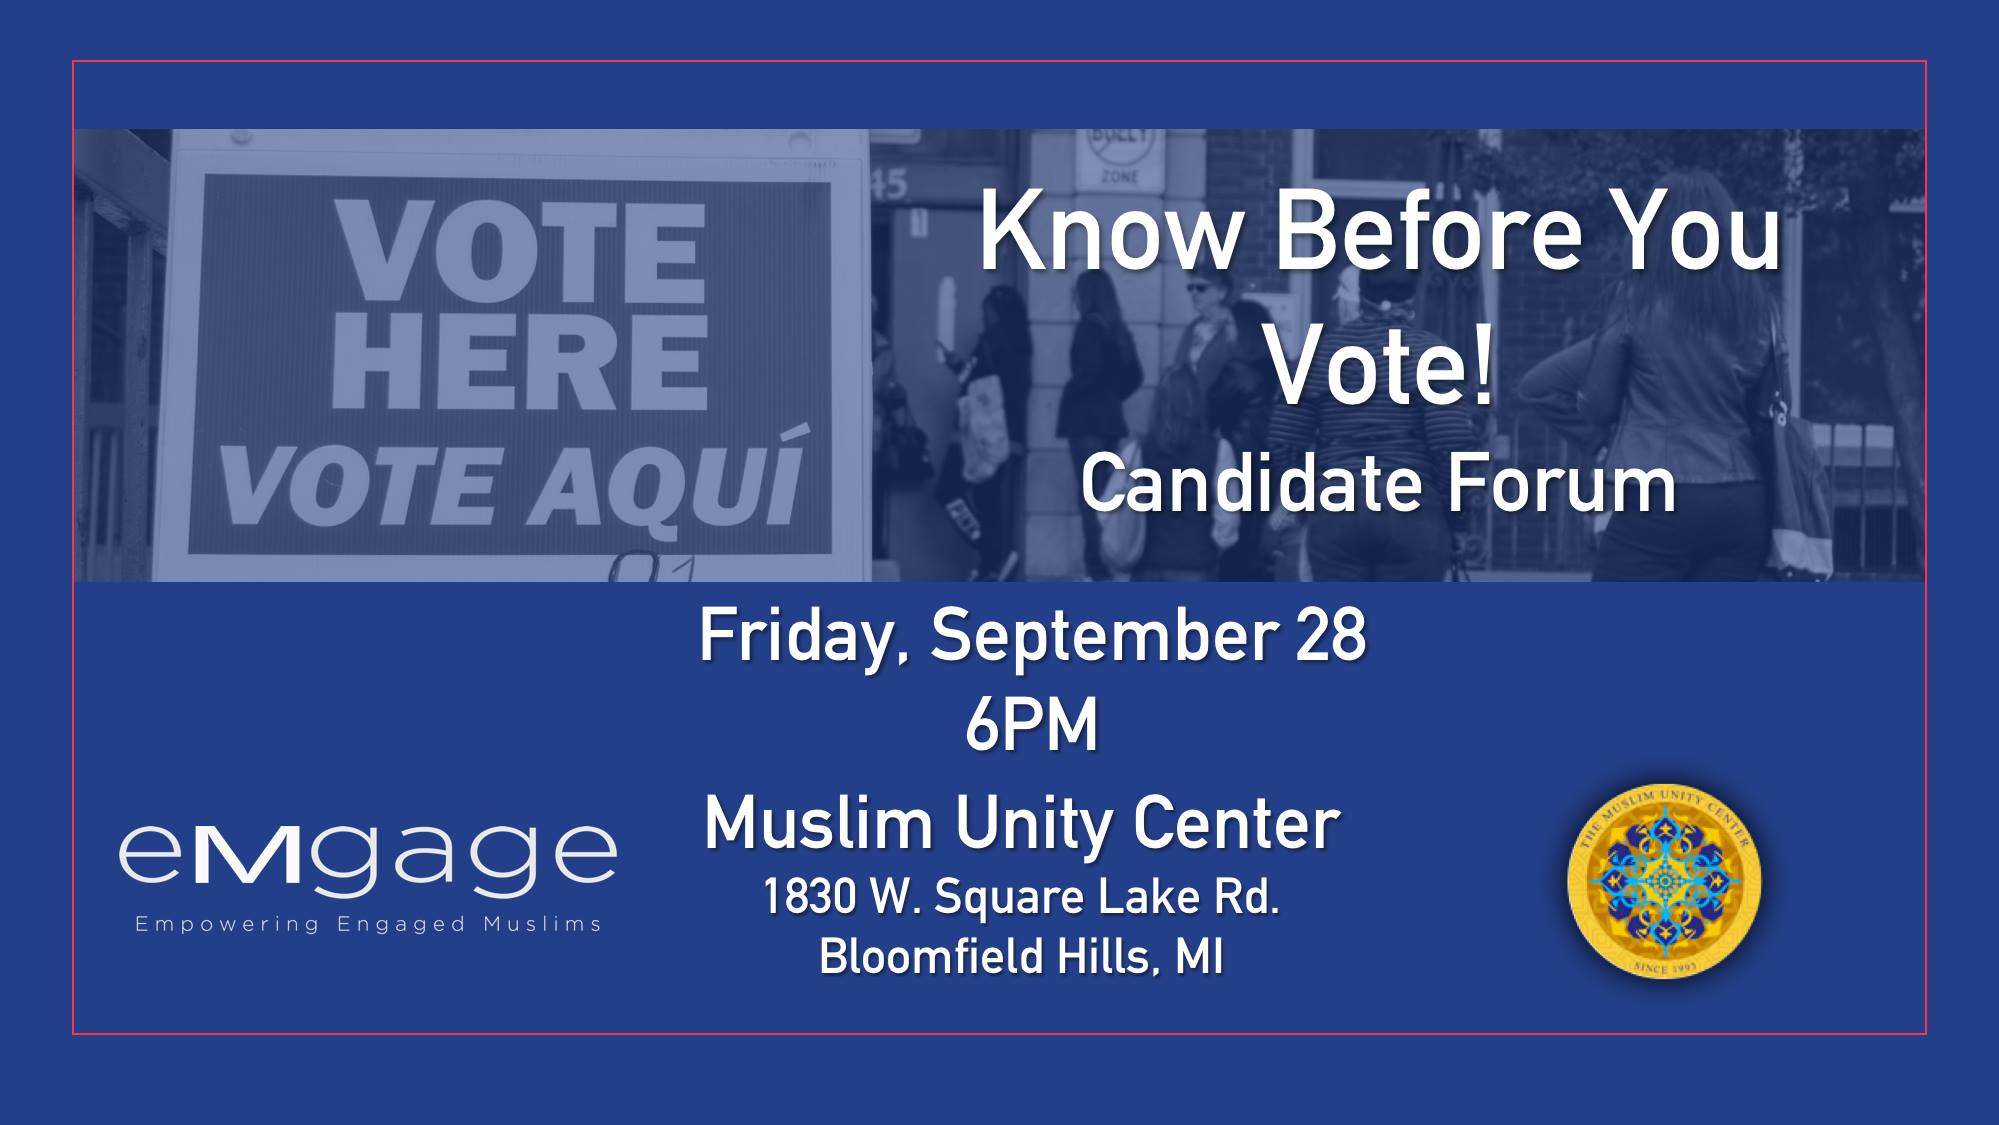 Candidate Forum at the MUC